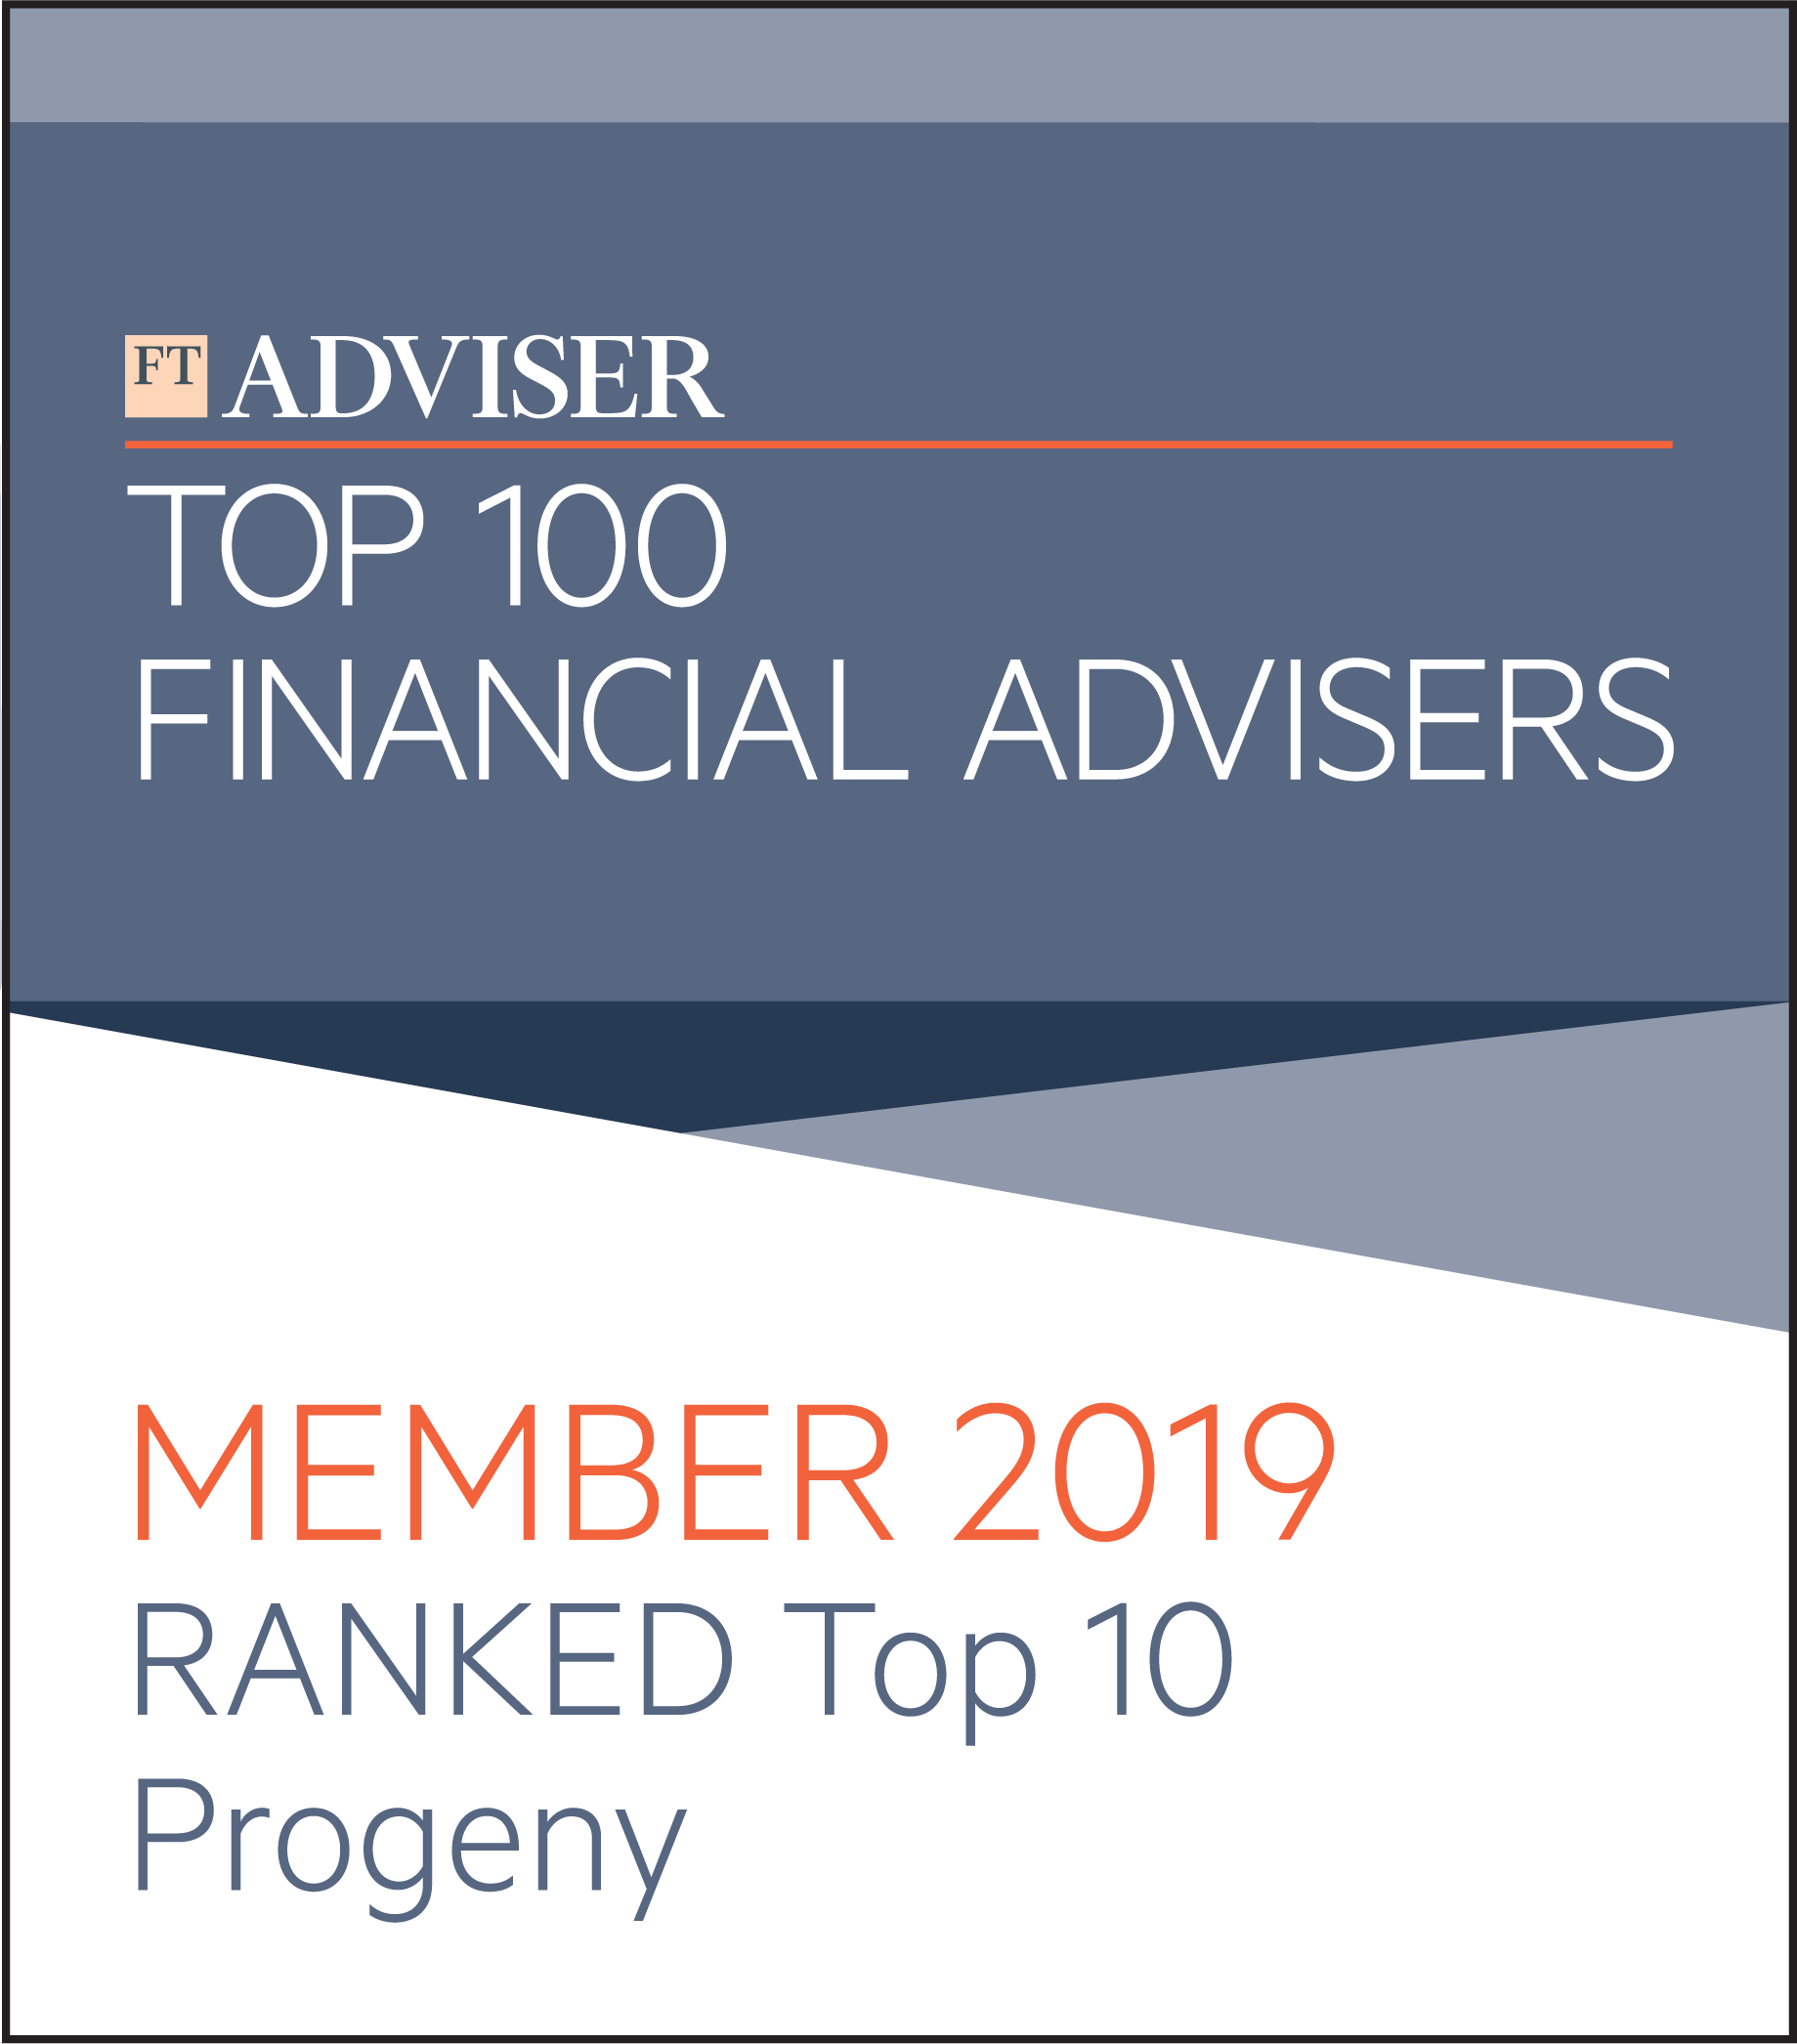 FTAdviser Top 100 Financial Advisers – Member 2019 – Ranked Top 10